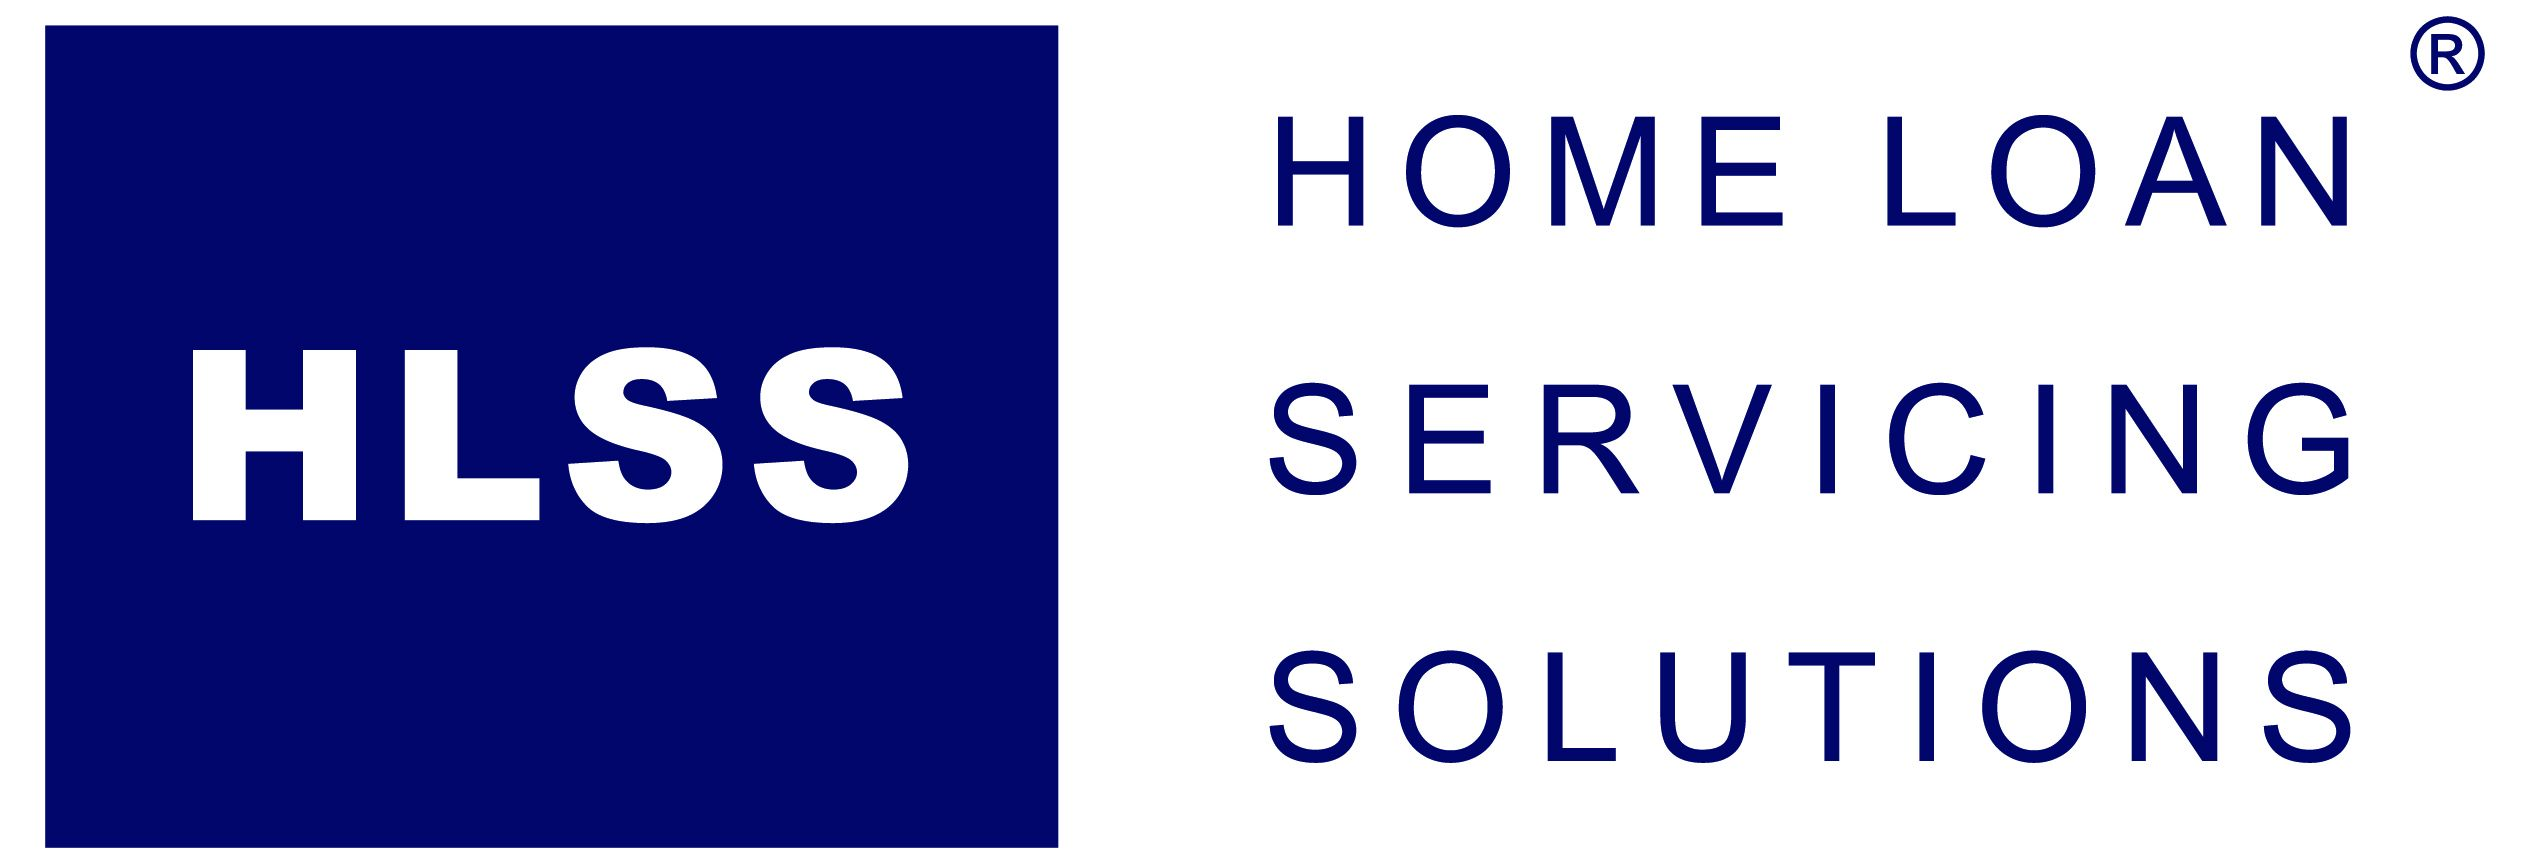 Home Loan Servicing Solutions, Ltd. Logo